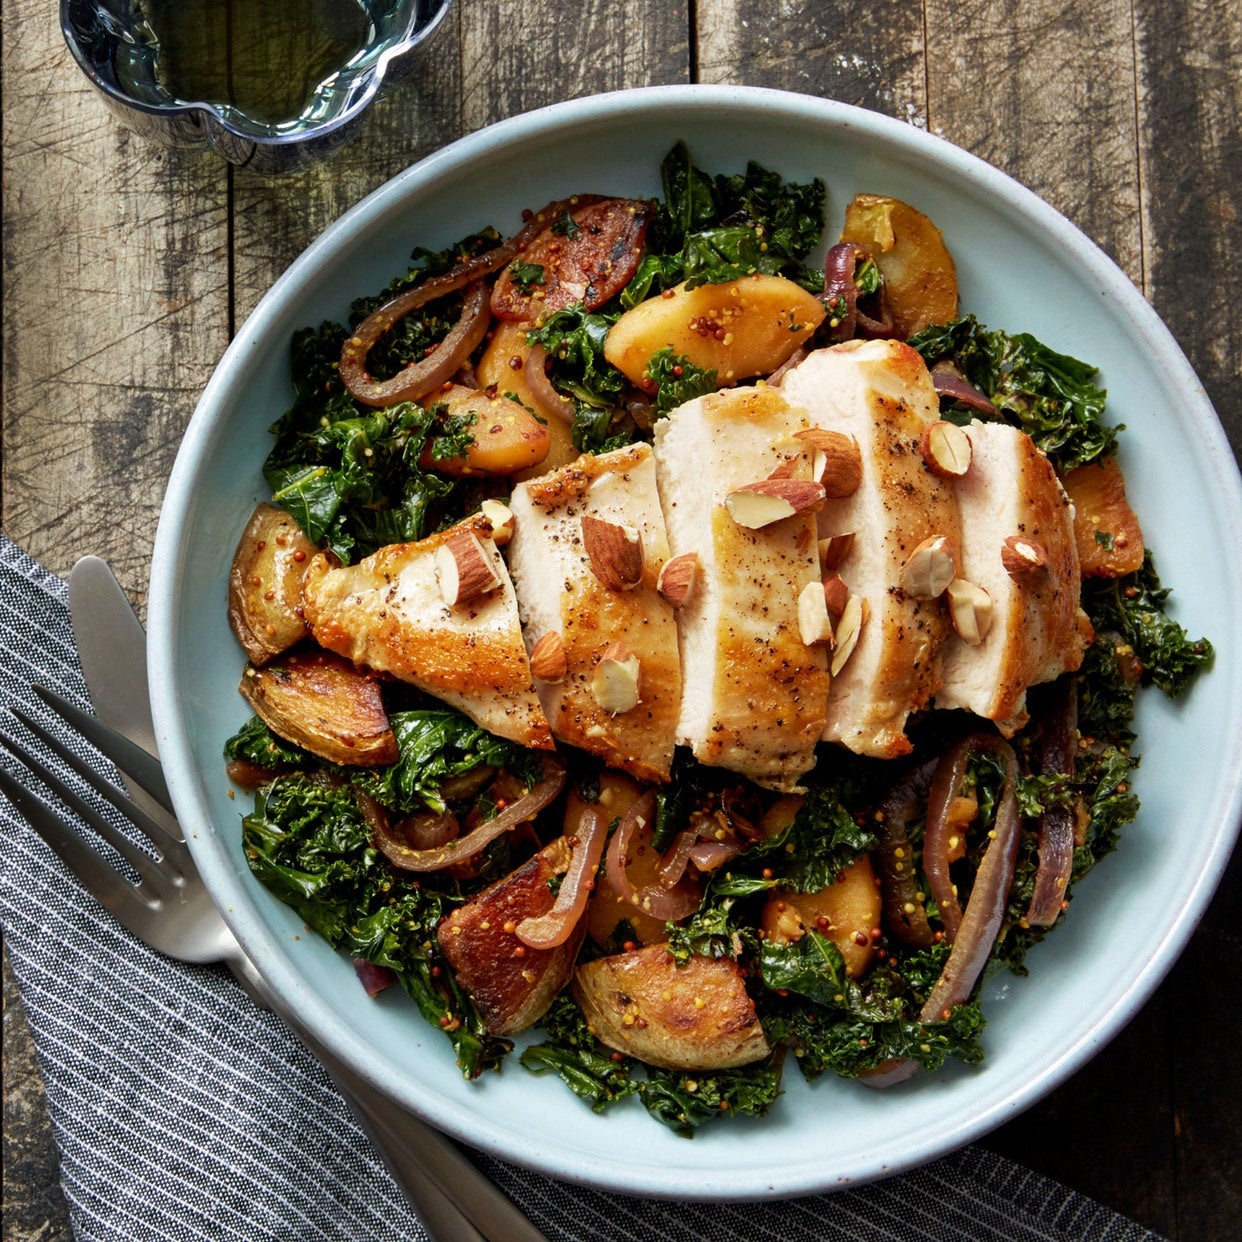 Seared Chicken & Pan Sauce with Apple, Kale & Potato Hash